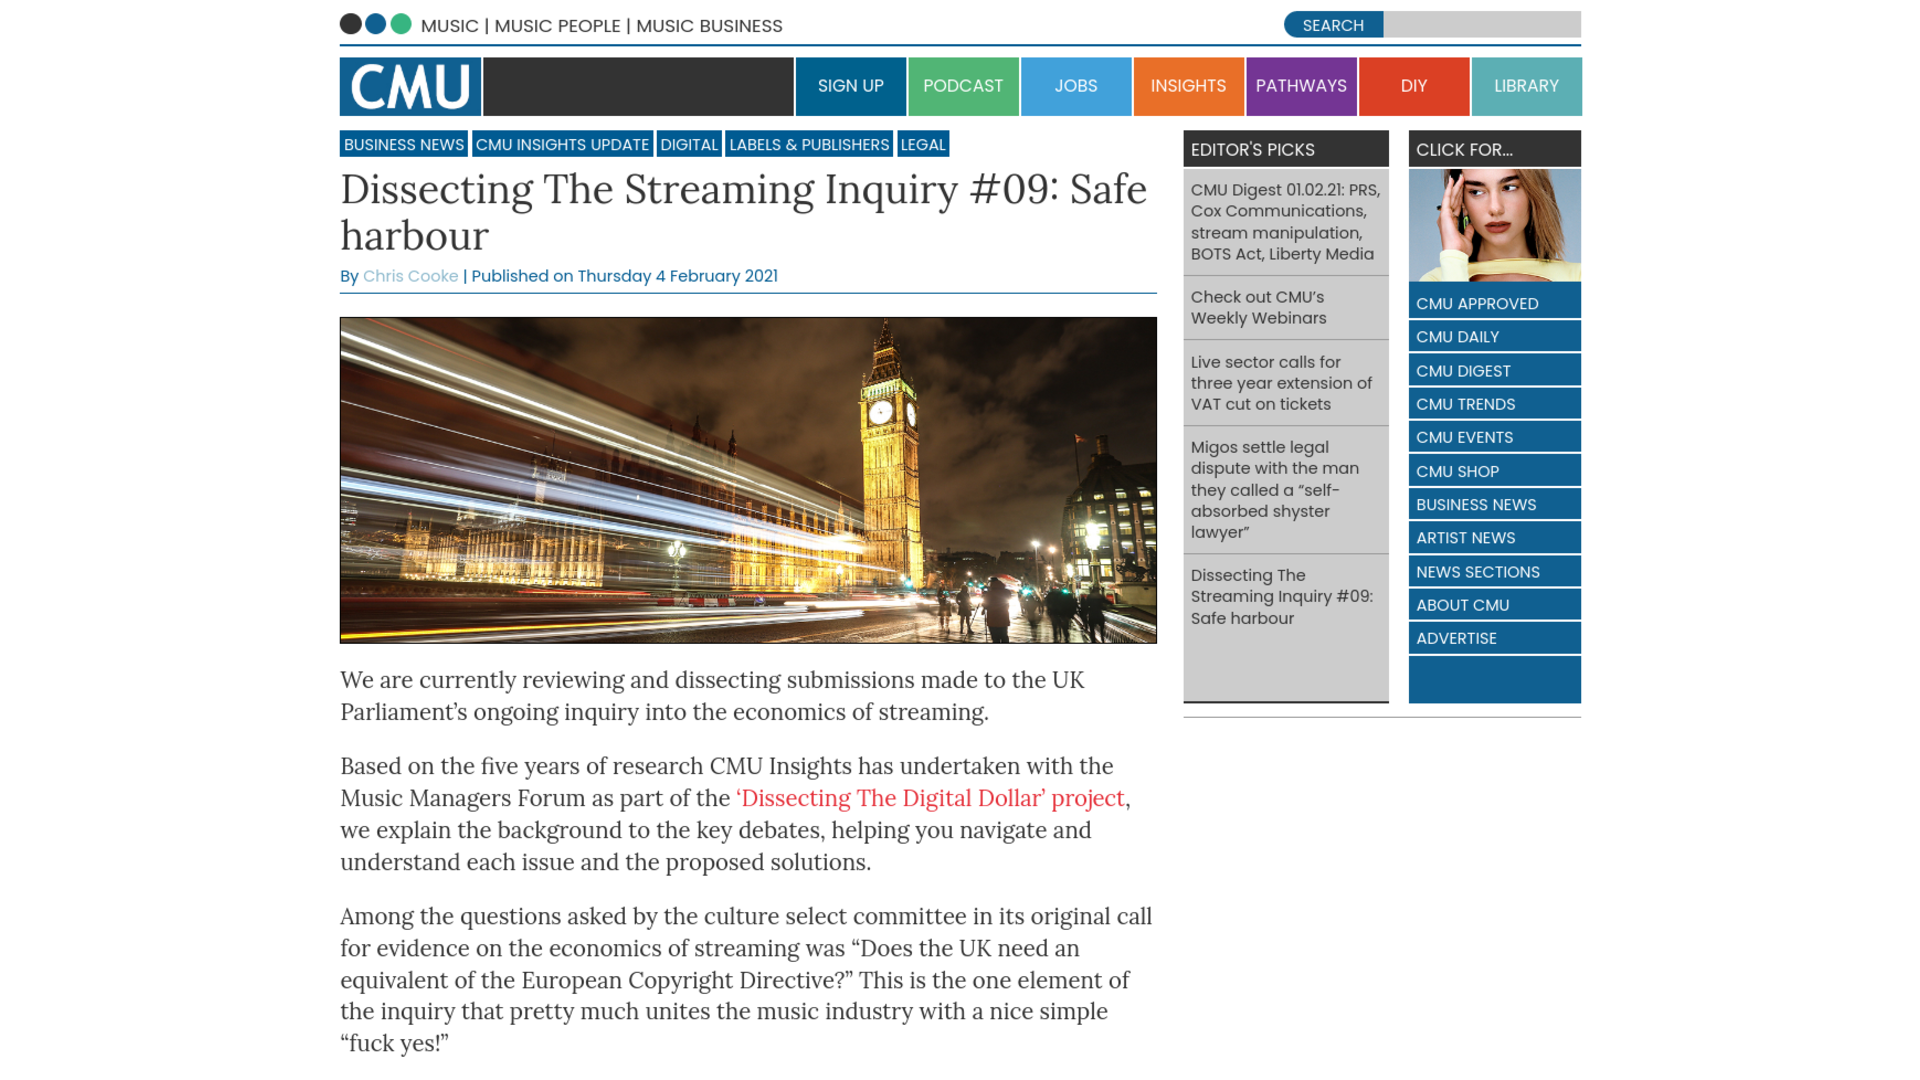 Fairness Rocks News Dissecting The Streaming Inquiry #09: Safe harbour